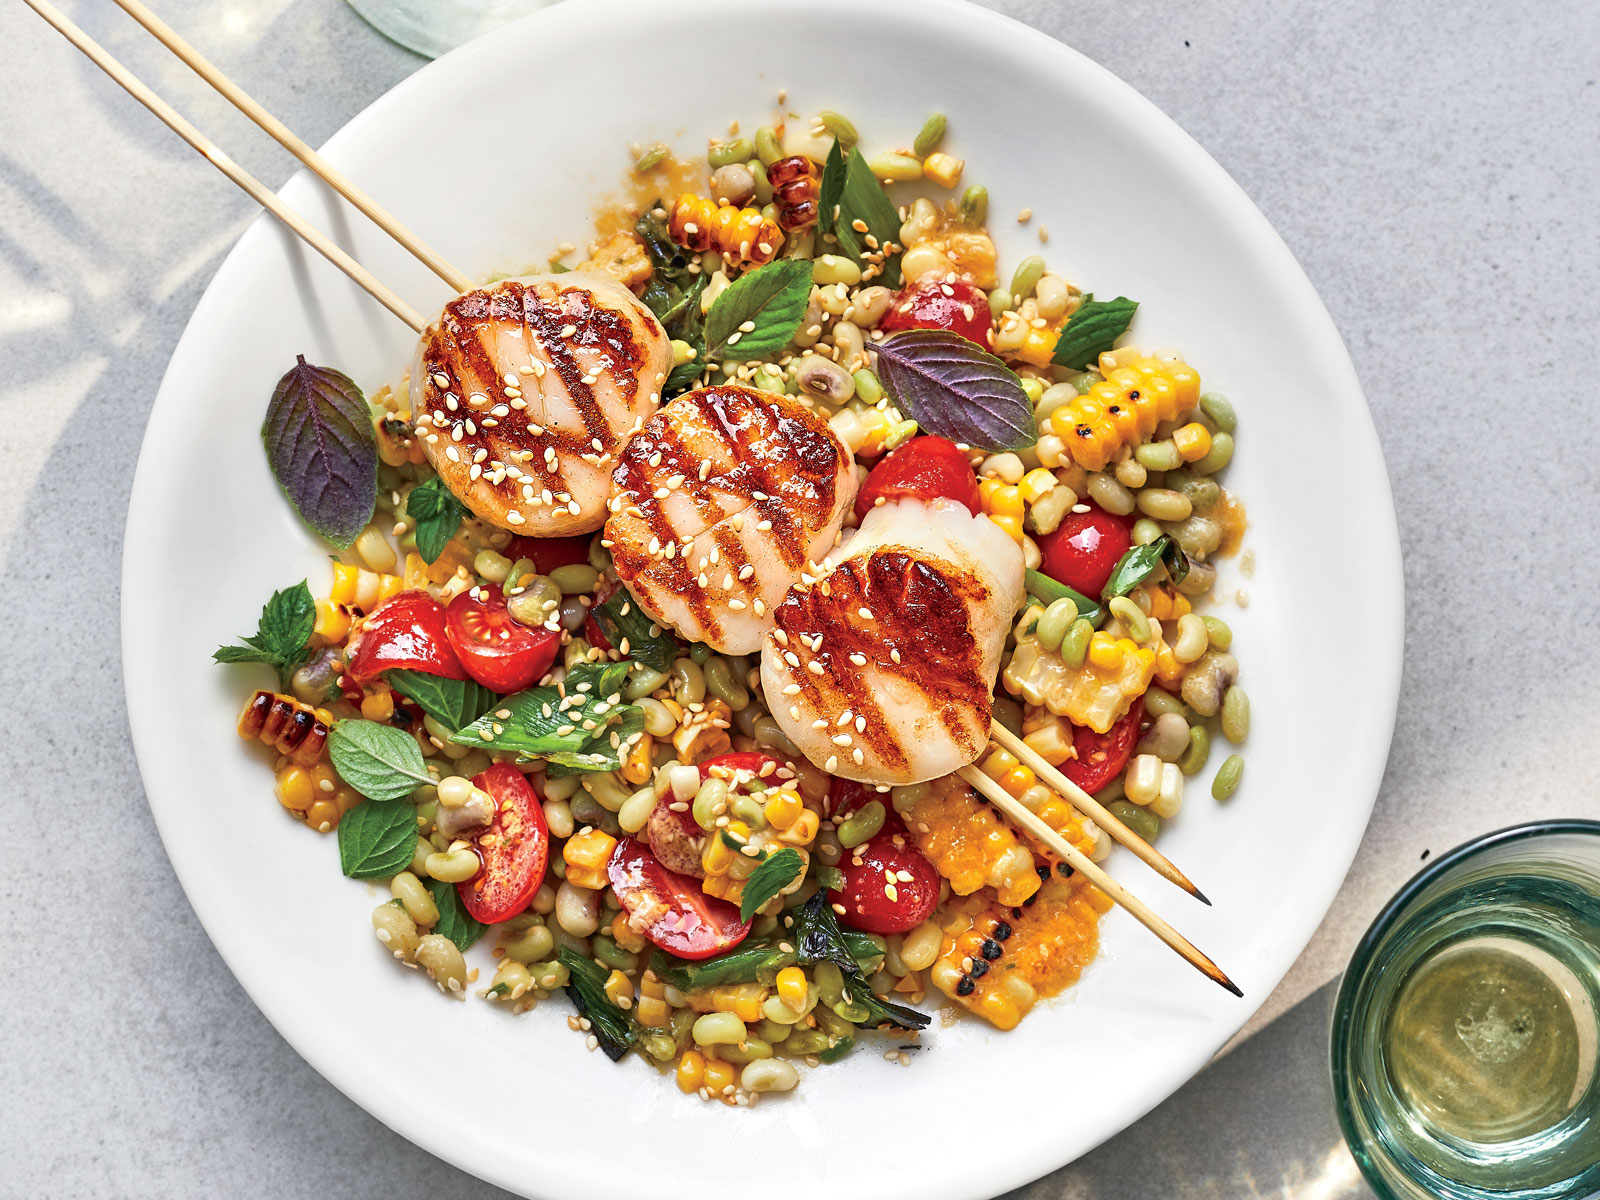 Grilled Scallops with Miso-Corn Salad